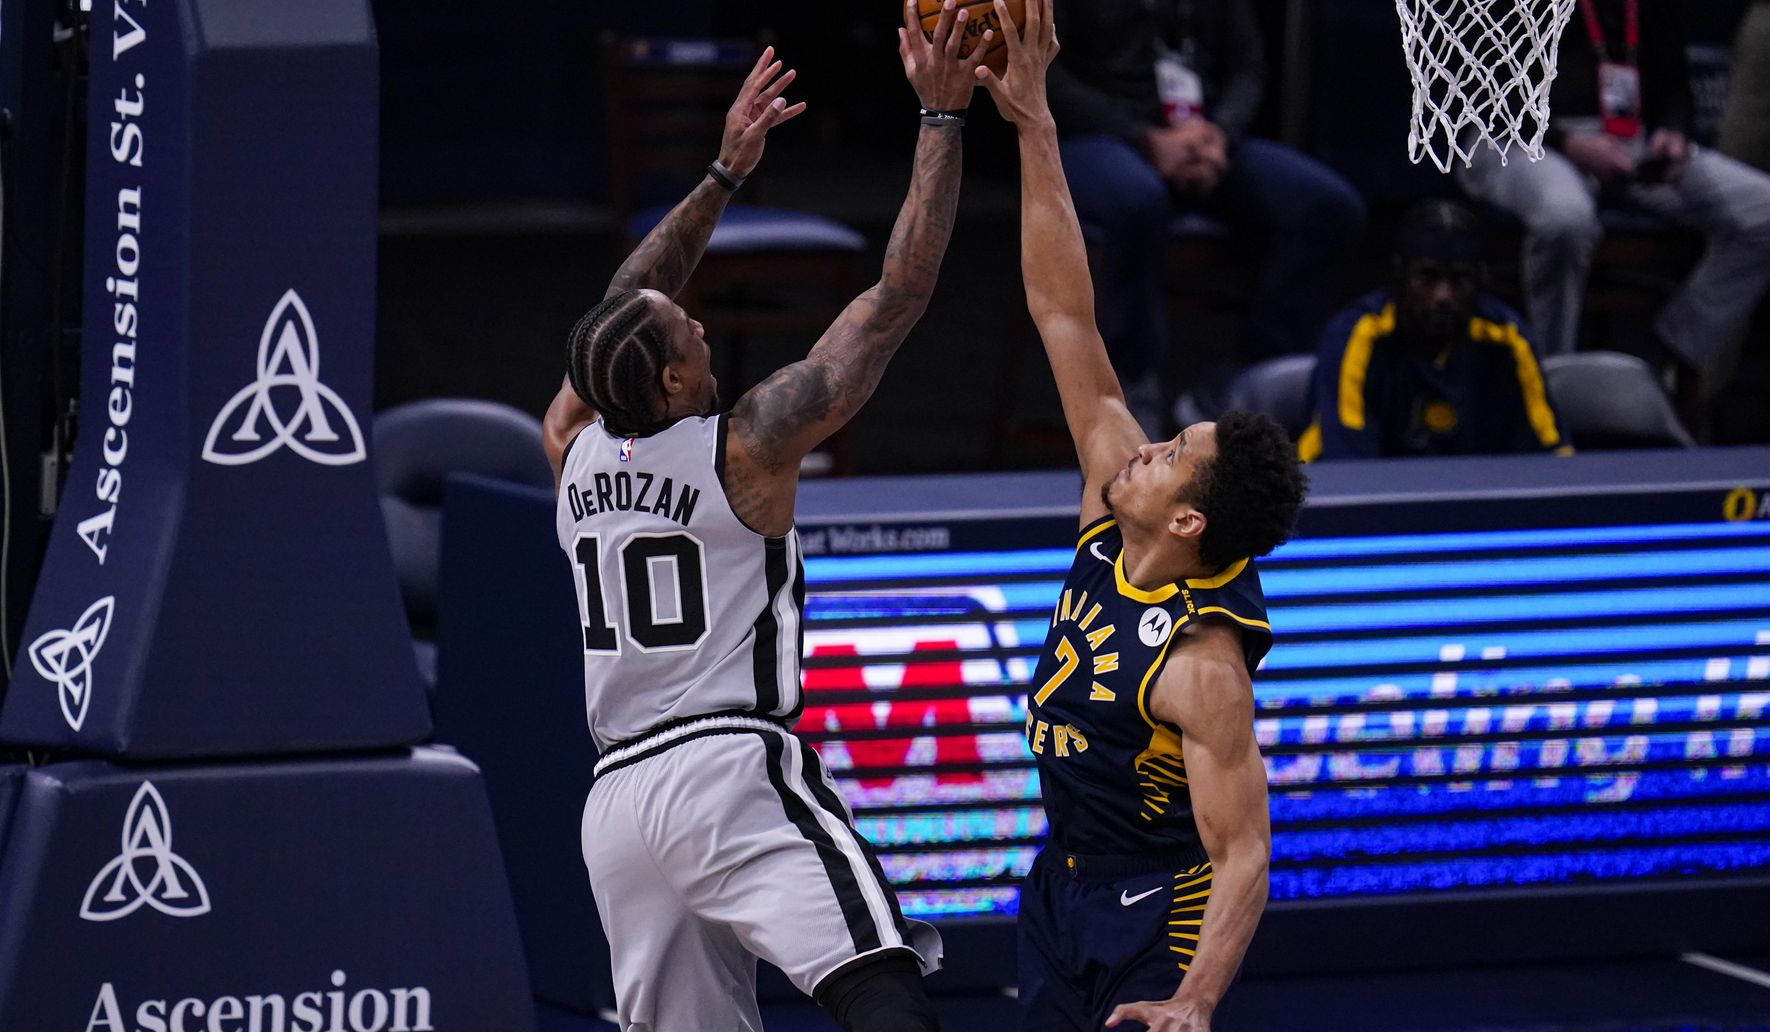 Spurs_pacers_basketball_72577_c0-237-5660-3537_s1770x1032